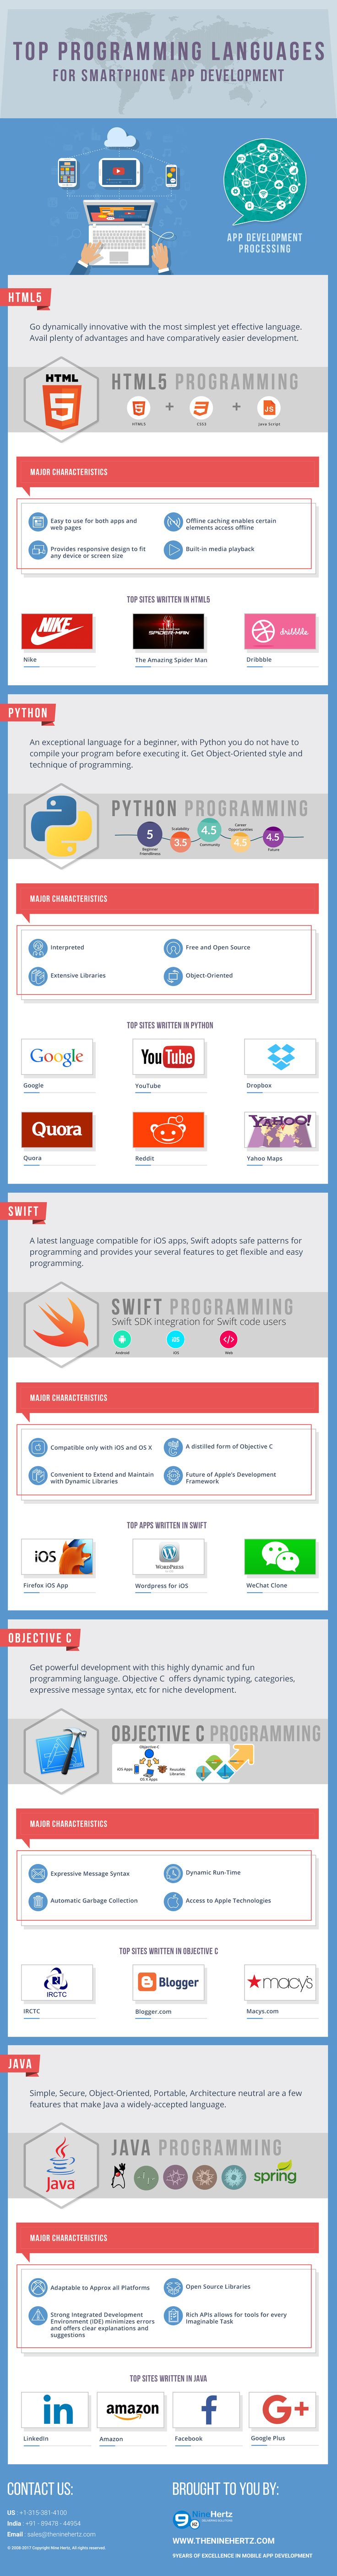 Top ten reasons for learning java programming language - You Will Need To Know A Programming Language Or Two Well Enough To Build Your Apps This Infographic From Ninehertz Covers Top Programming